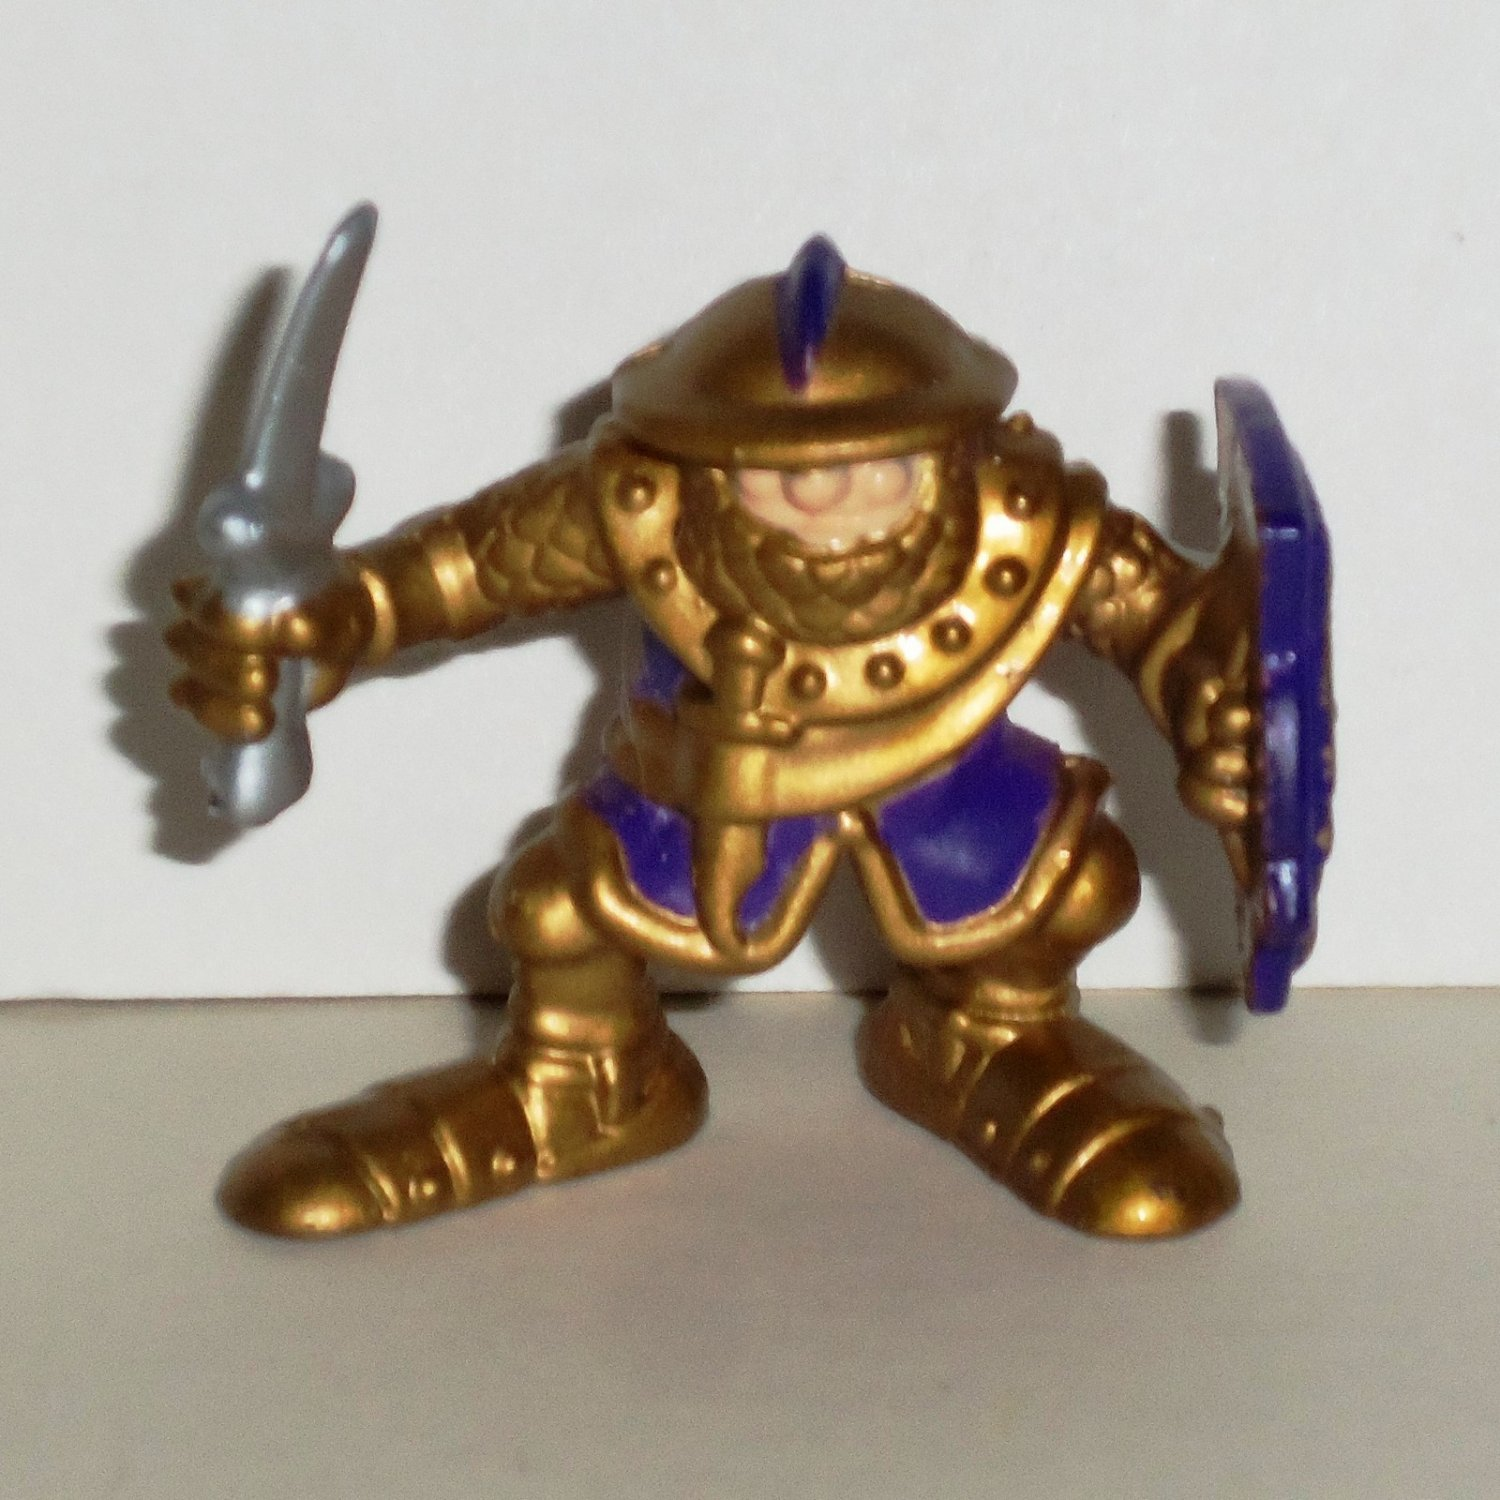 Fisher-Price 1998 Great Adventures Gold Knight Figure from All-in-One Castle Loose Used